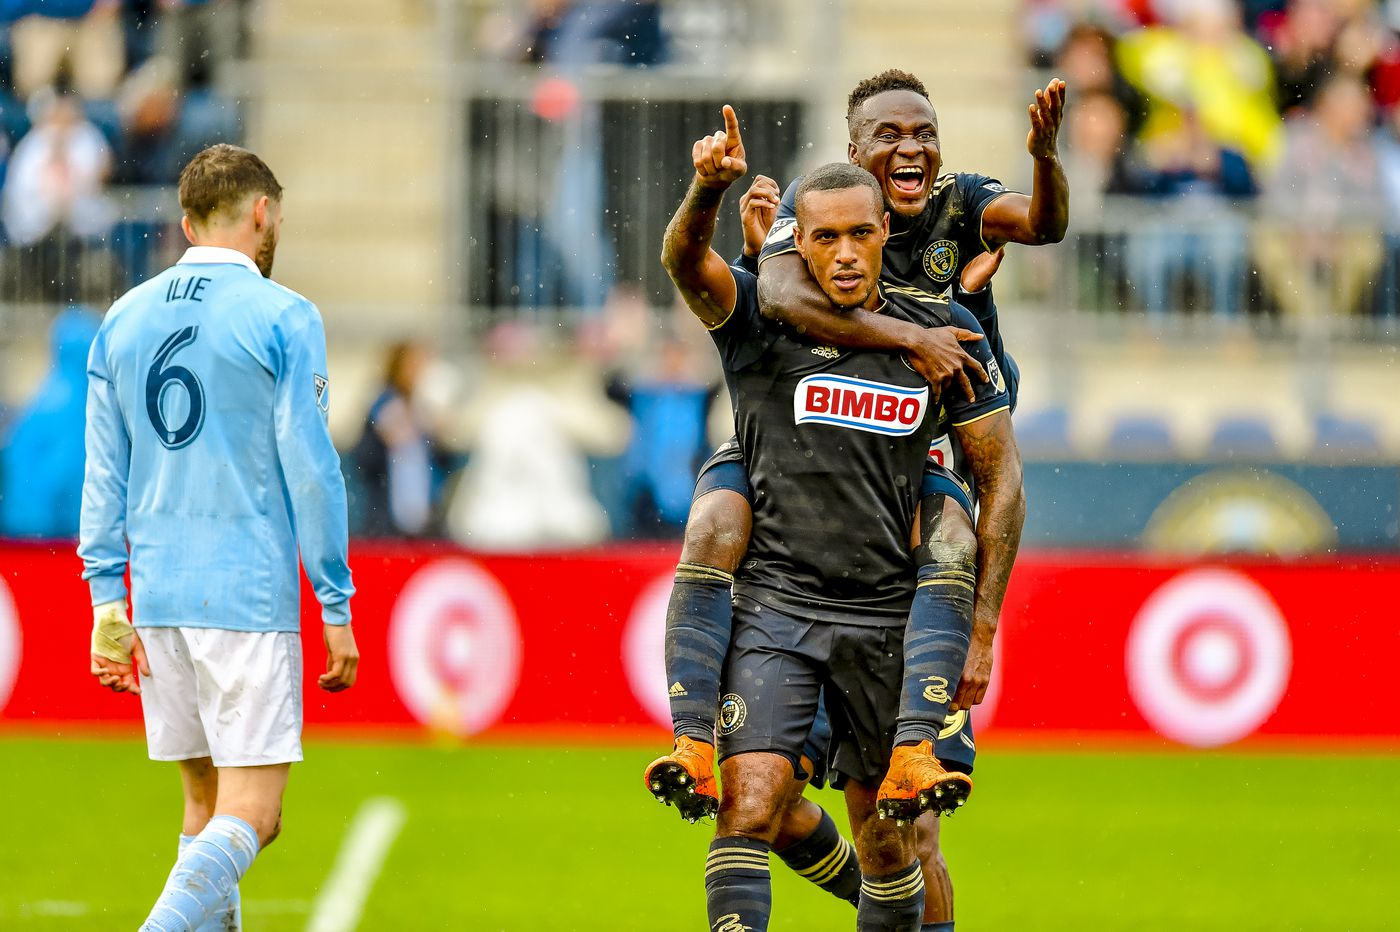 Jay Simpson's goals lead Union to 2-0 win over Sporting Kansas City